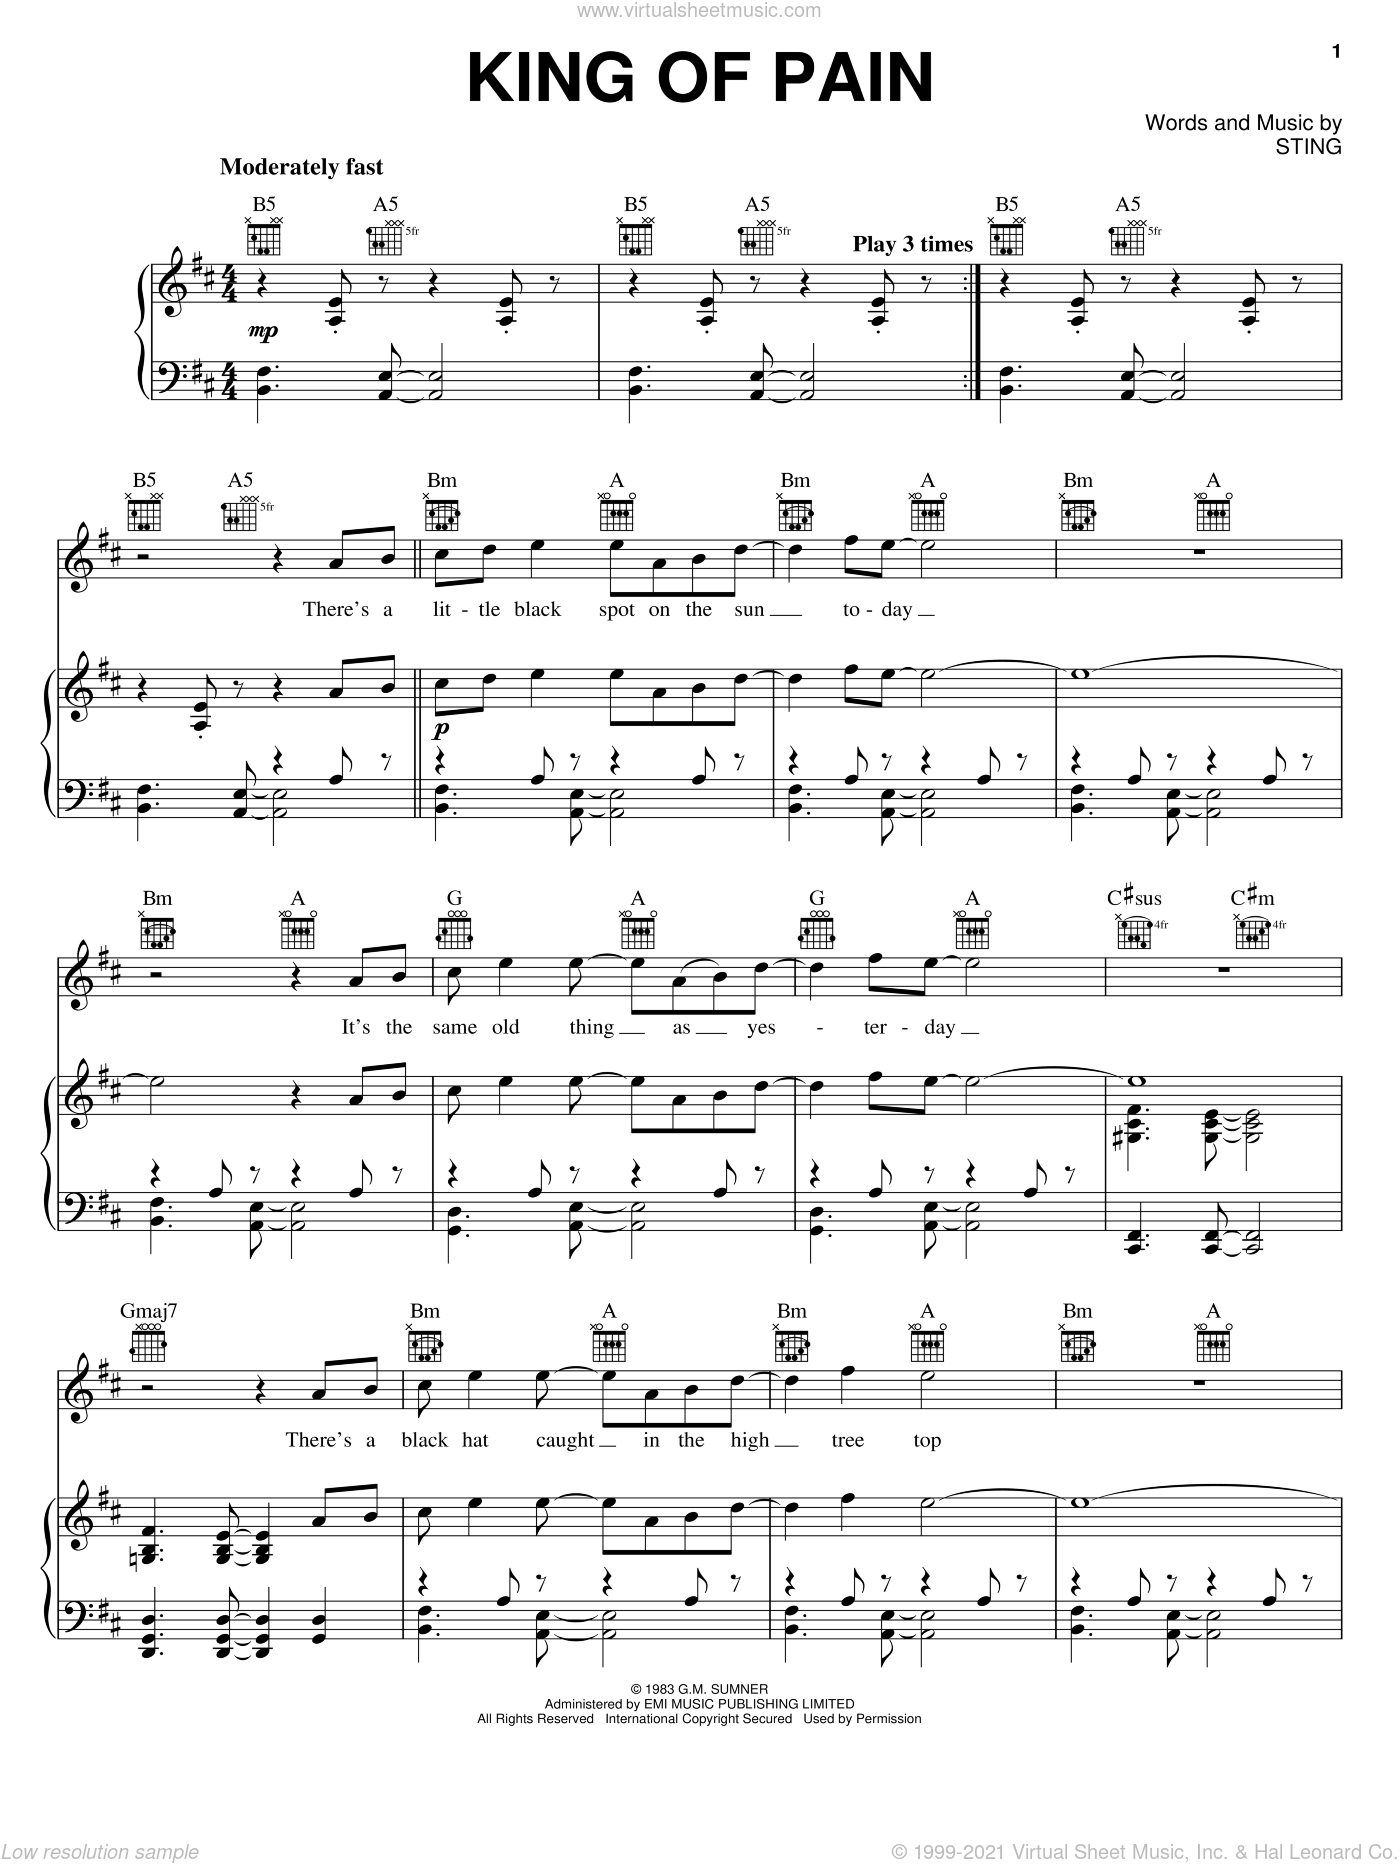 King Of Pain sheet music for voice, piano or guitar by The Police and Sting, intermediate skill level